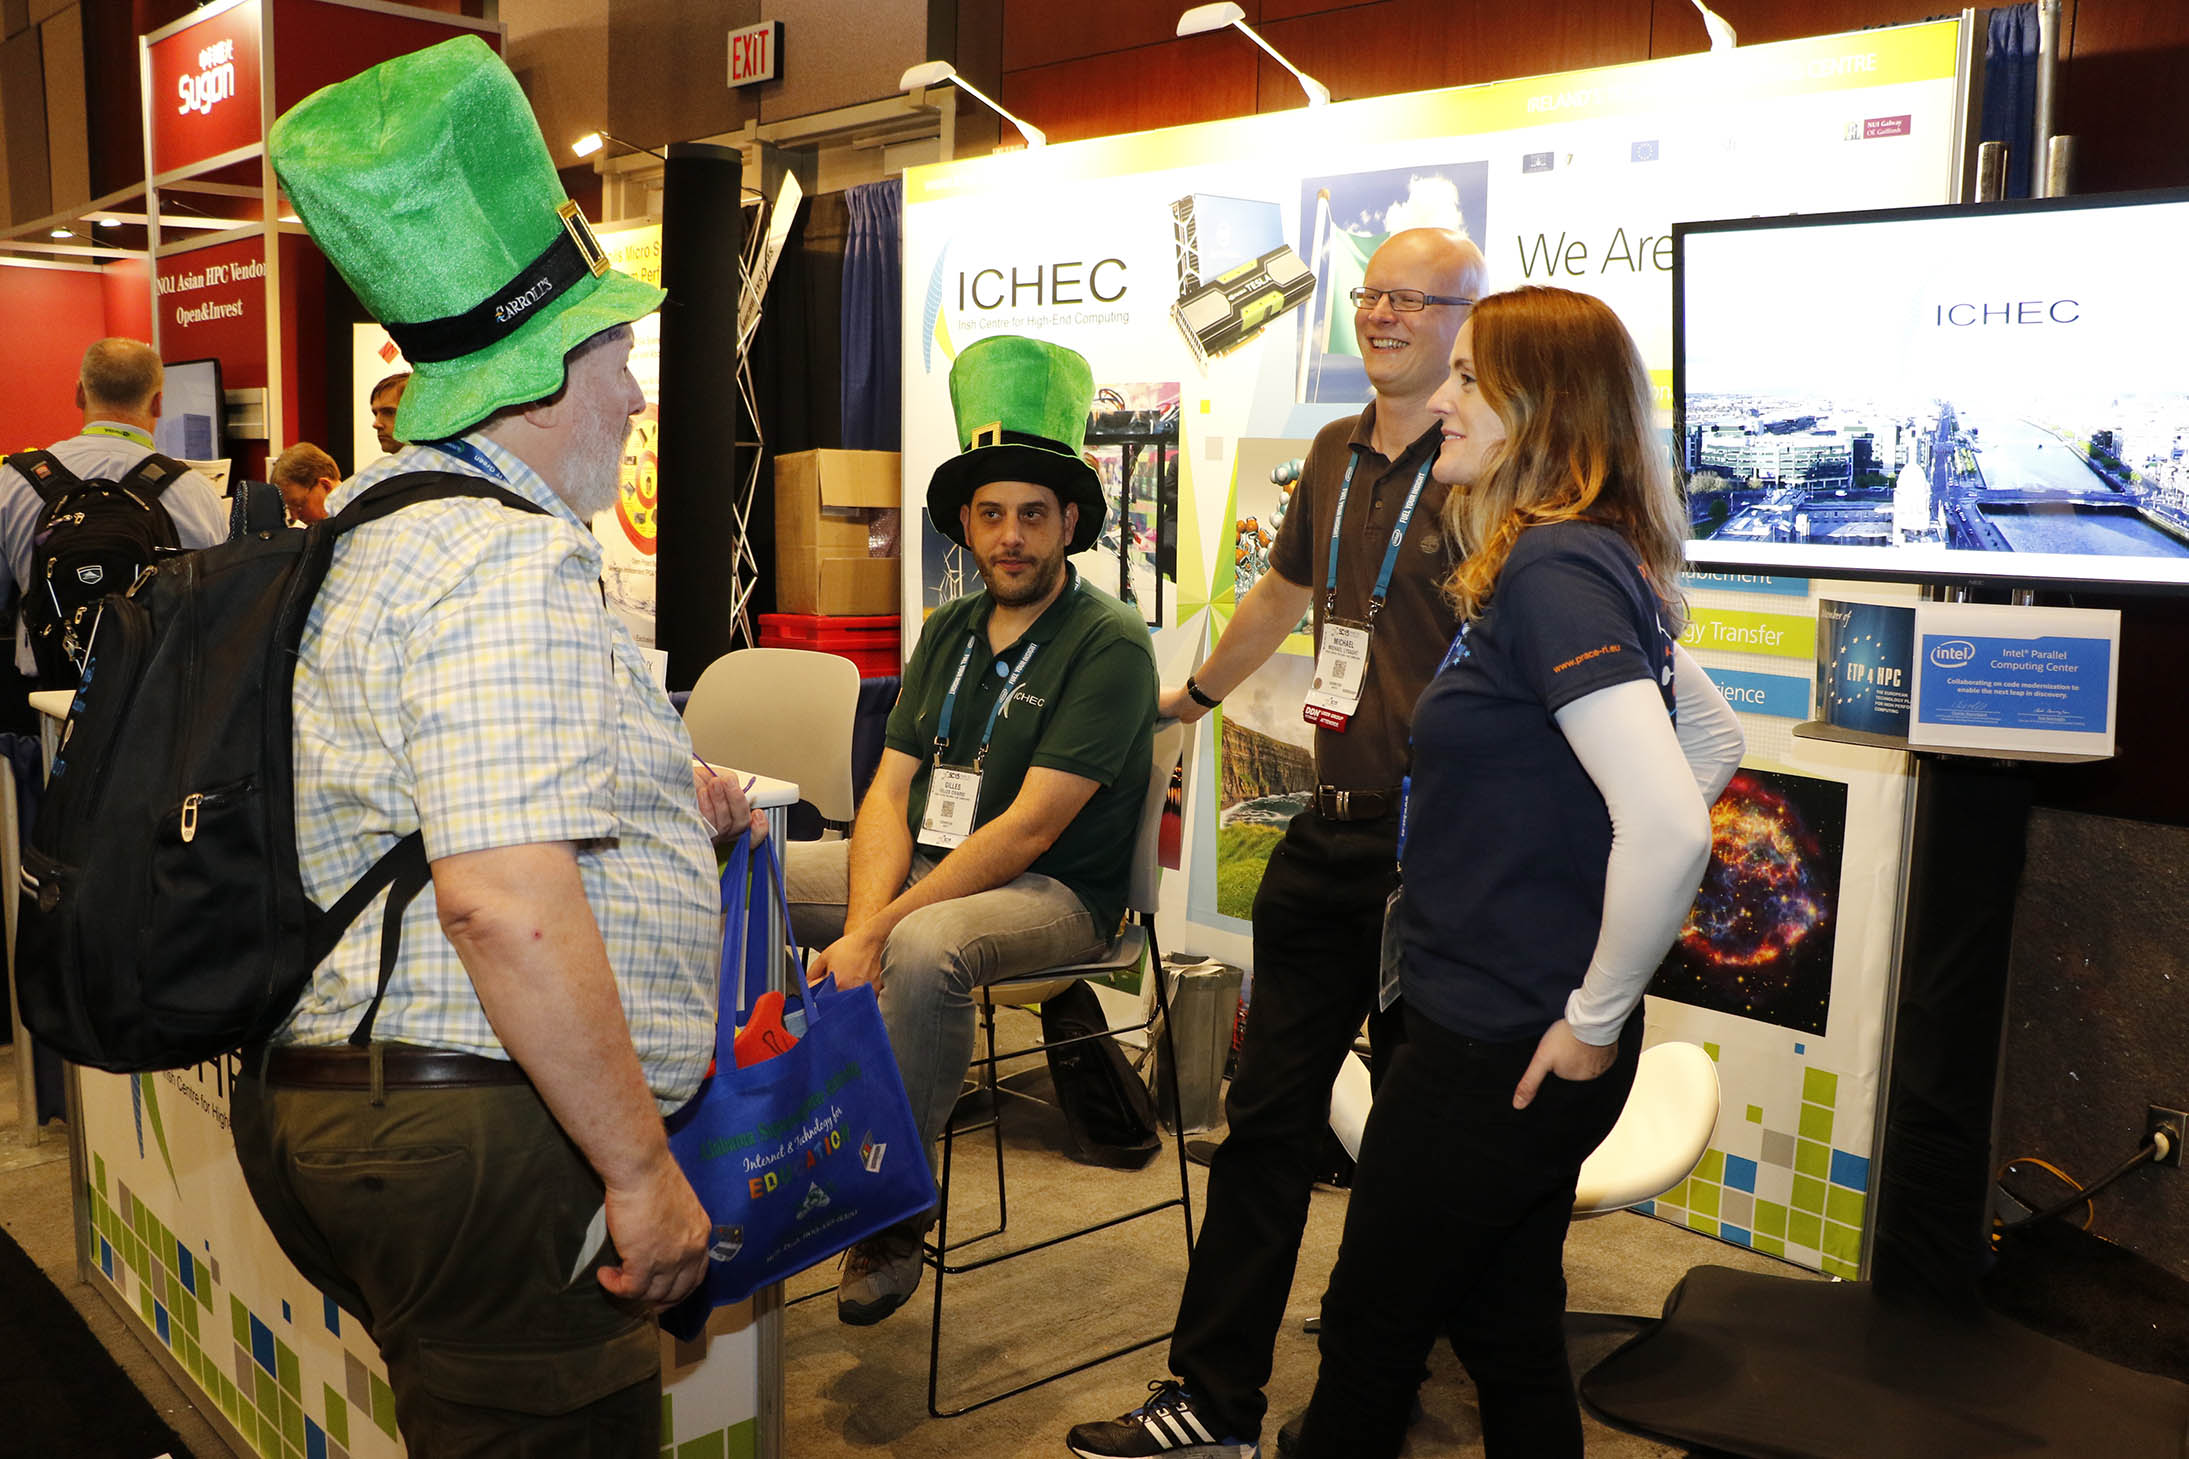 Visitors to the ICHEC booth at SC'15 (Austin, TX)